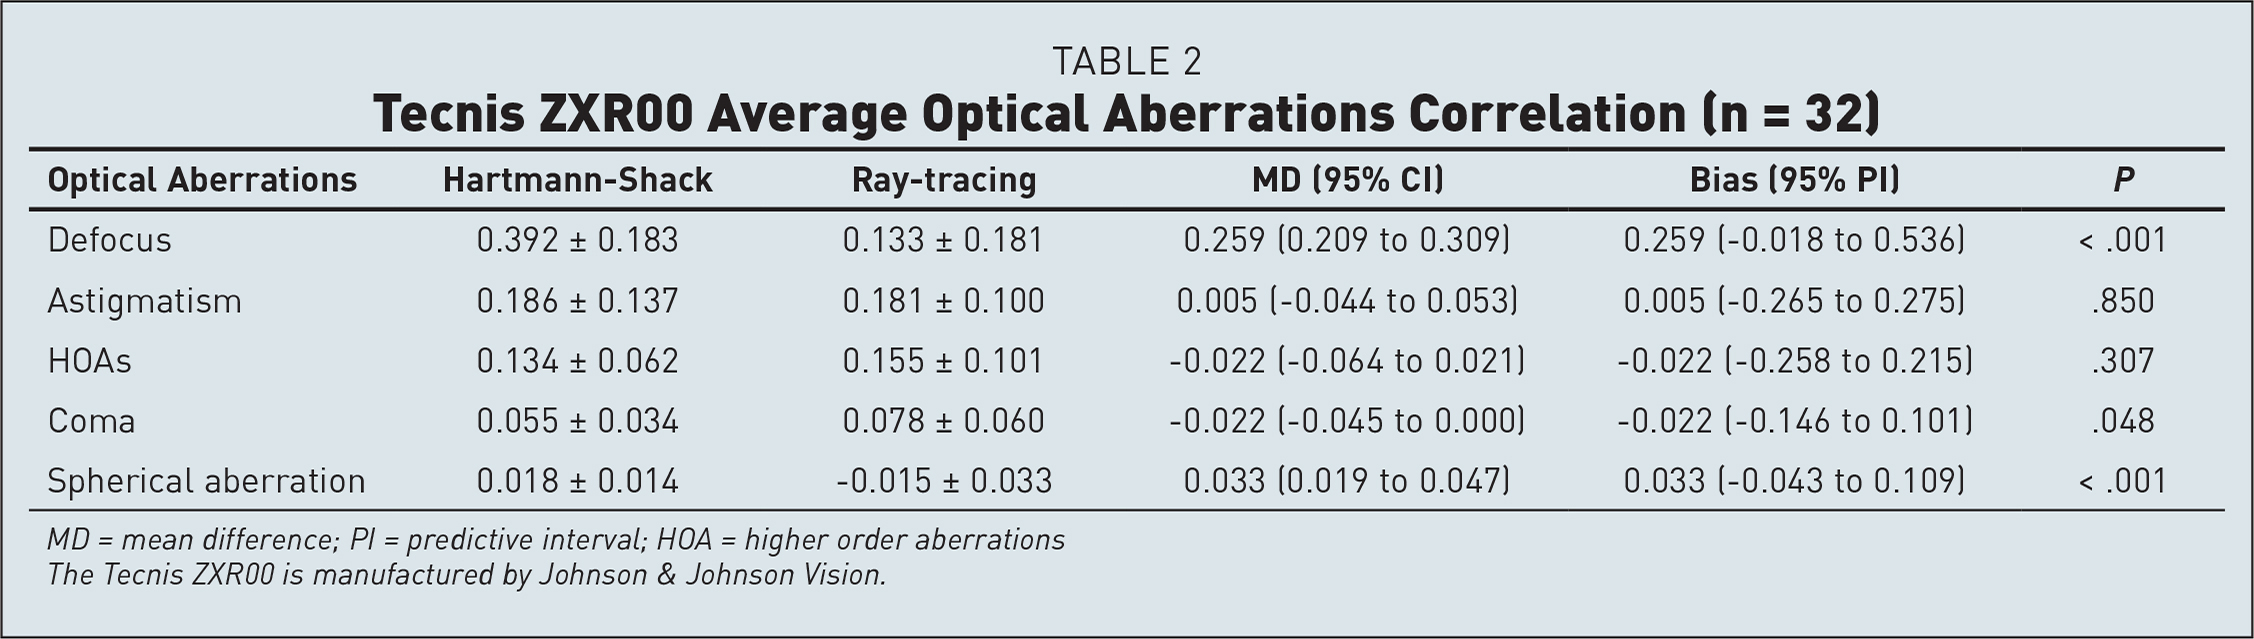 Tecnis ZXR00 Average Optical Aberrations Correlation (n = 32)